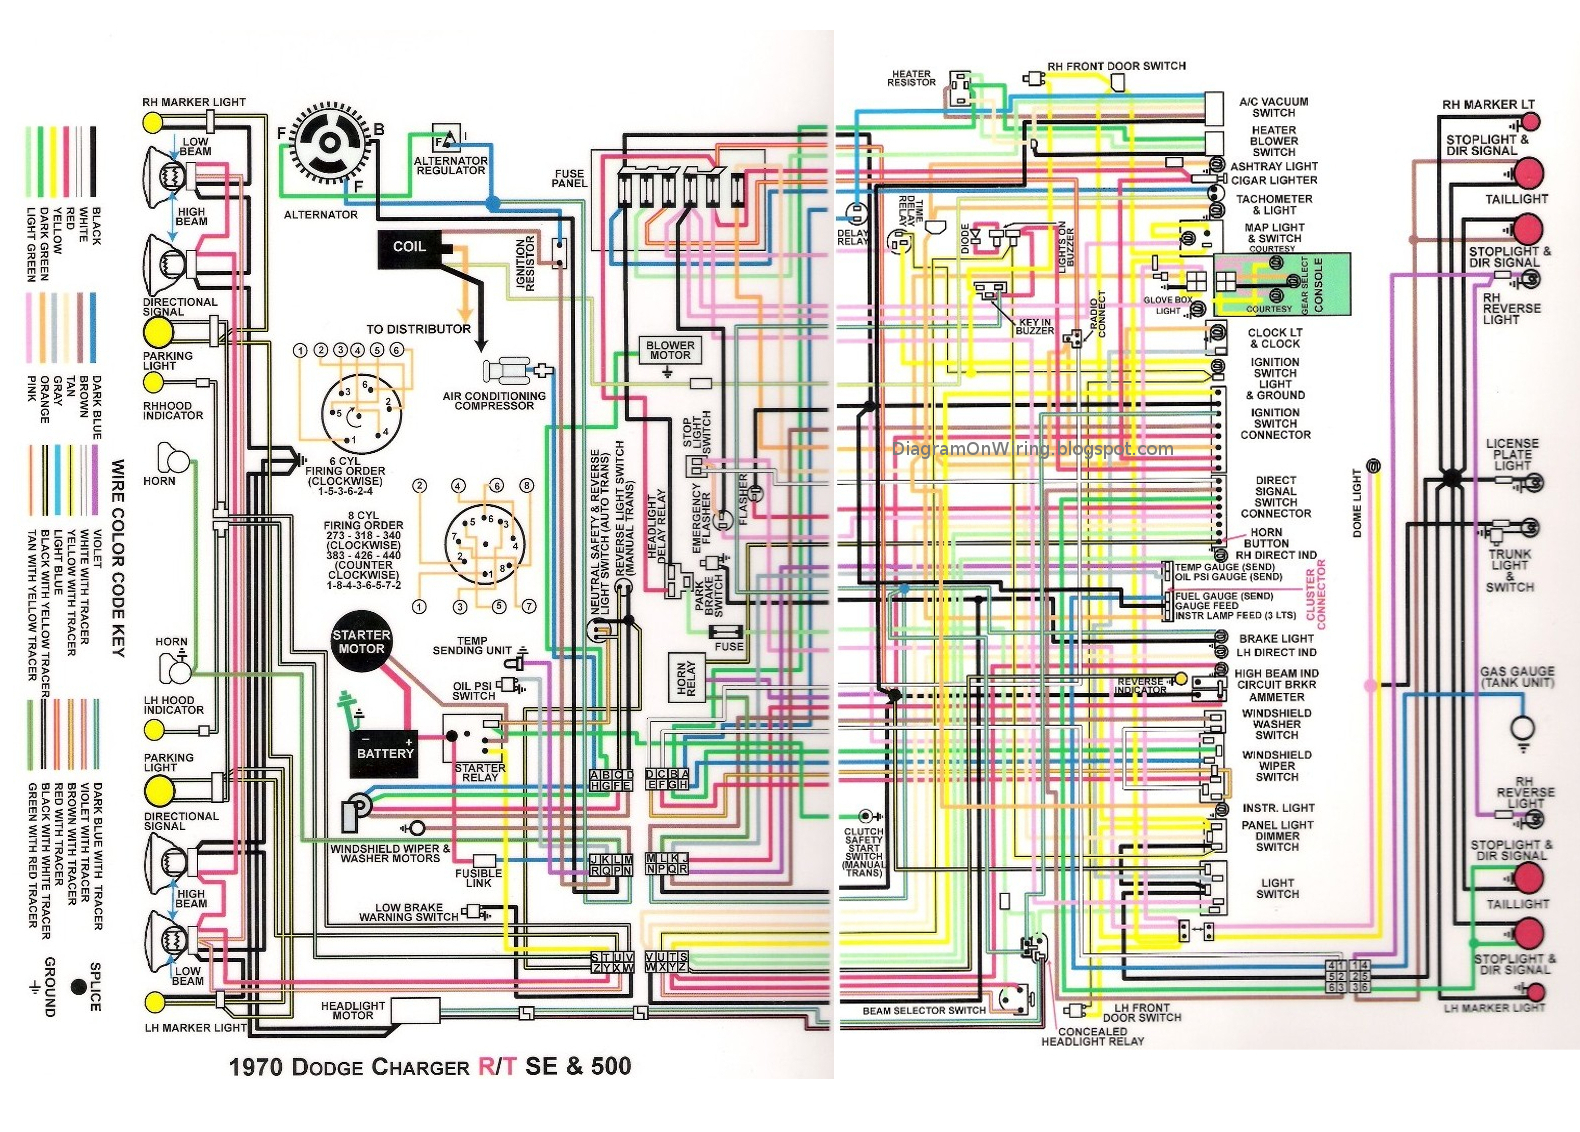 Complete+Wiring+Diagram+for+1970+Dodge+Charger+RT+SE+and+50 72 c10 wiring diagram 64 c10 wiring diagram \u2022 free wiring diagrams  at edmiracle.co